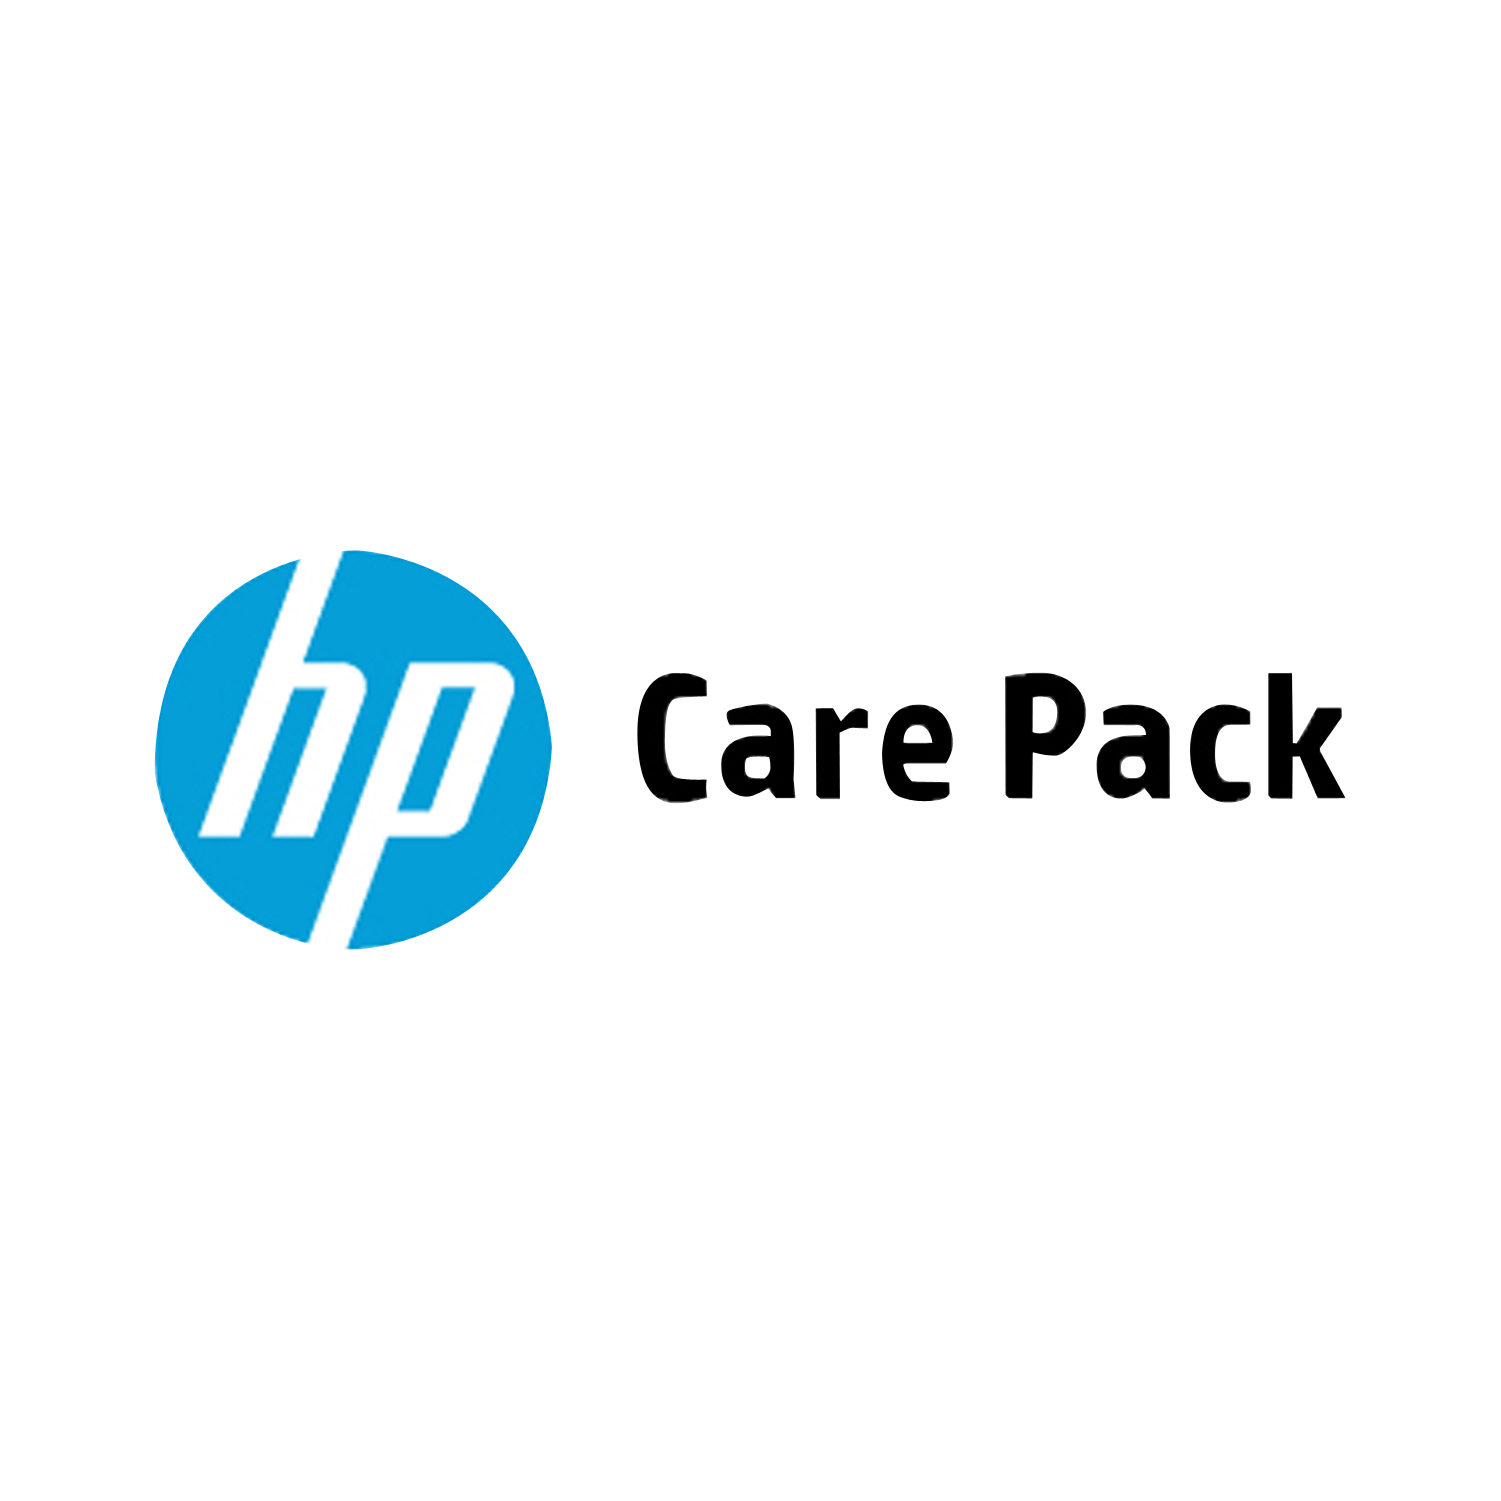 Electronic HP Care Pack Next Business Day Hardware Support - Extended Service Agreement - Parts And Labour - 3 Years - On-site - 9x5 - Response Time: NBD - For LaserJet Pro MFP M426dw, MFP M4 - C2000